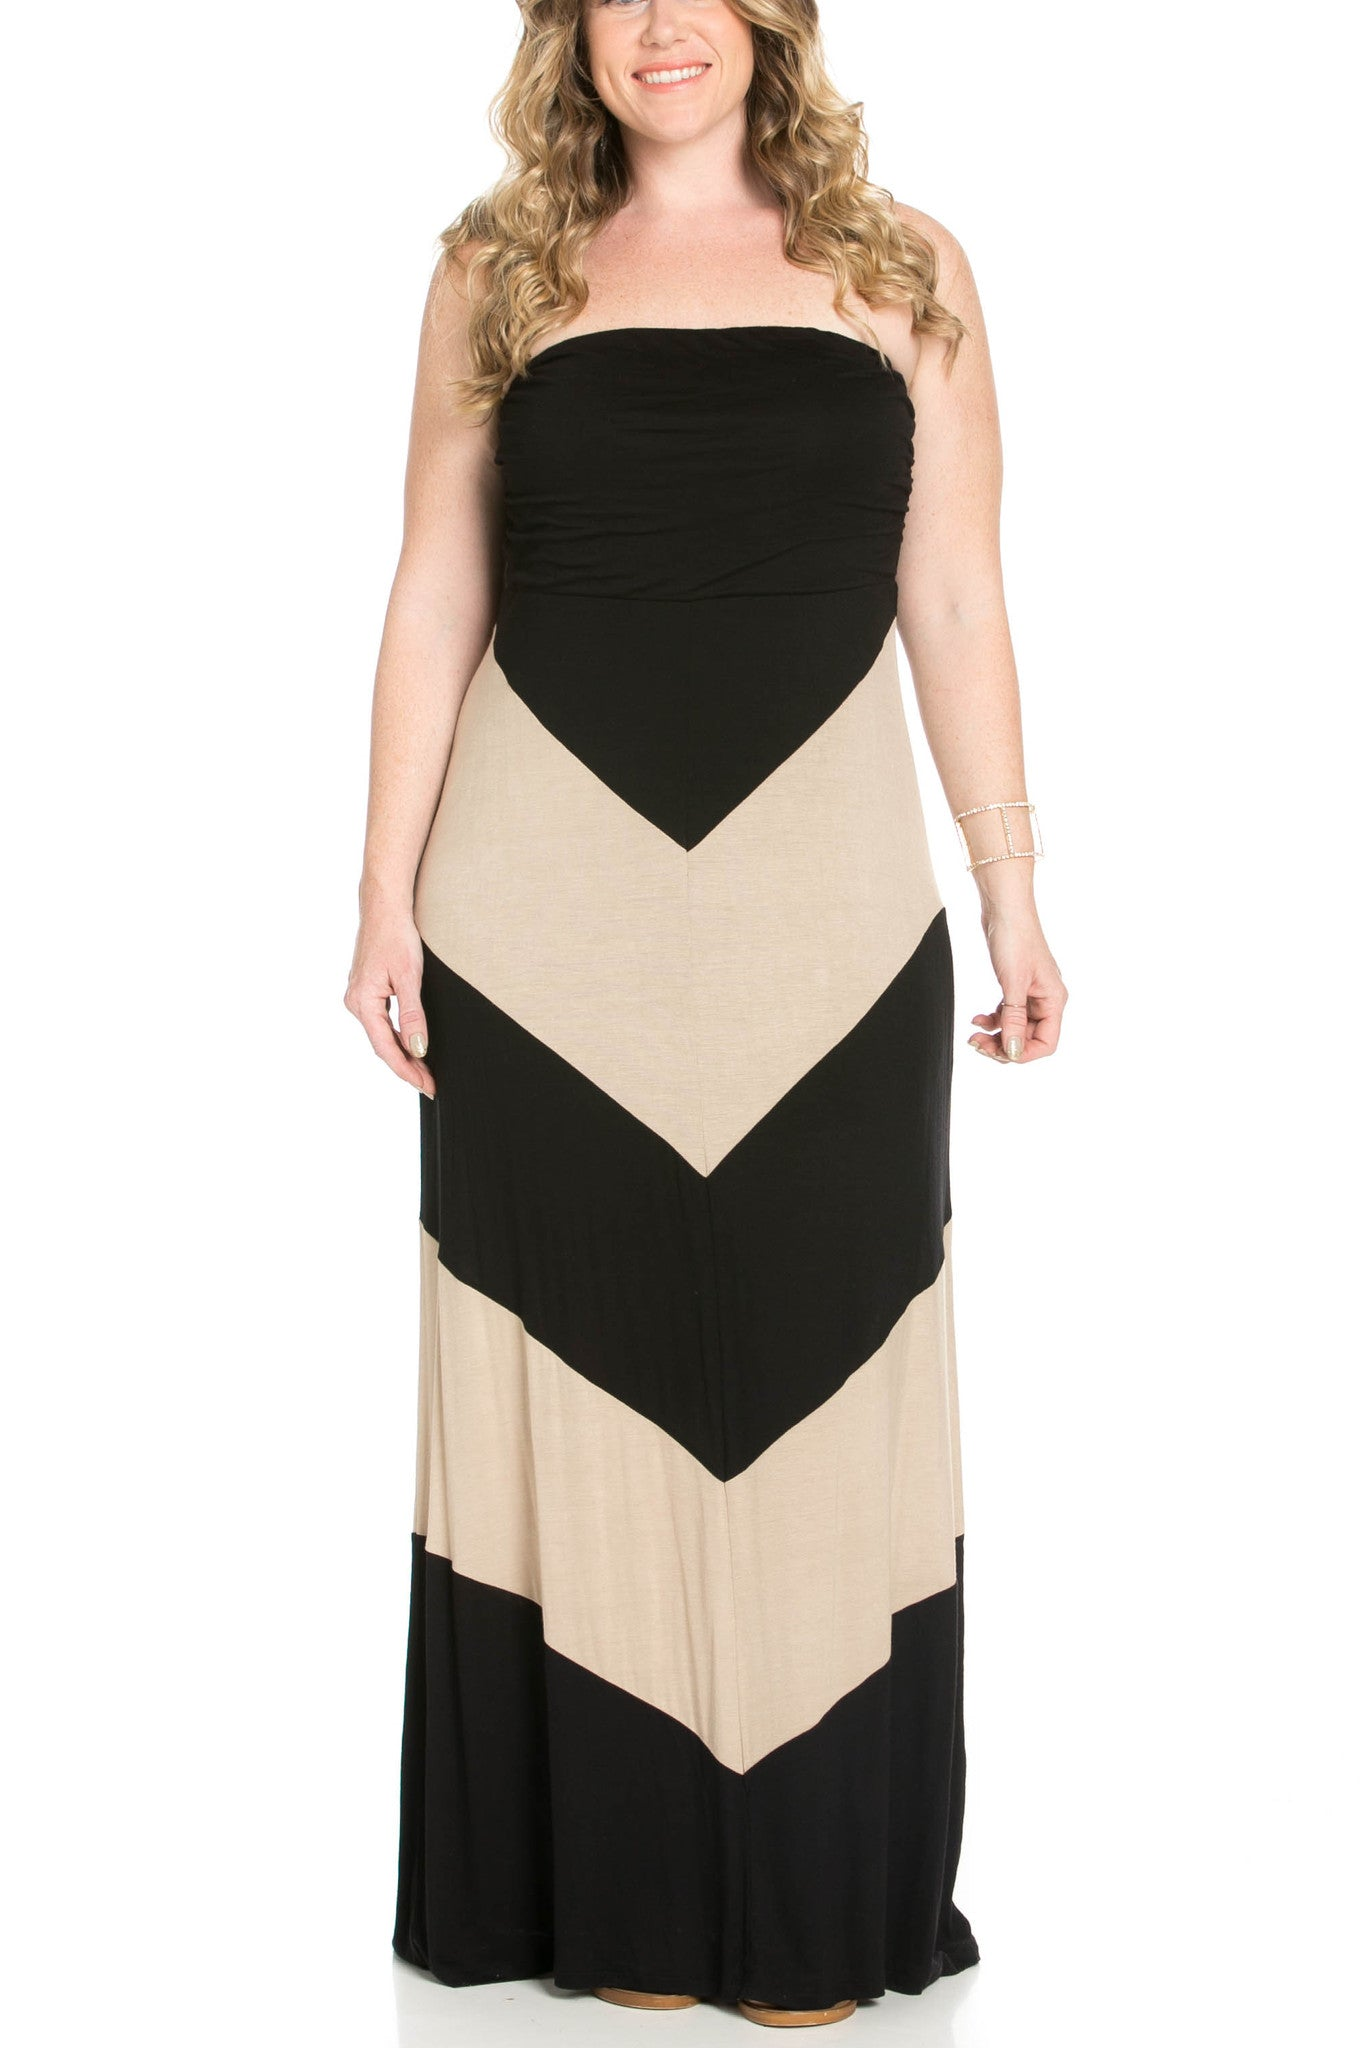 Strapless Long tube Dress  Black/Taupe Cause You're Chevron - Dresses - My Yuccie - 5